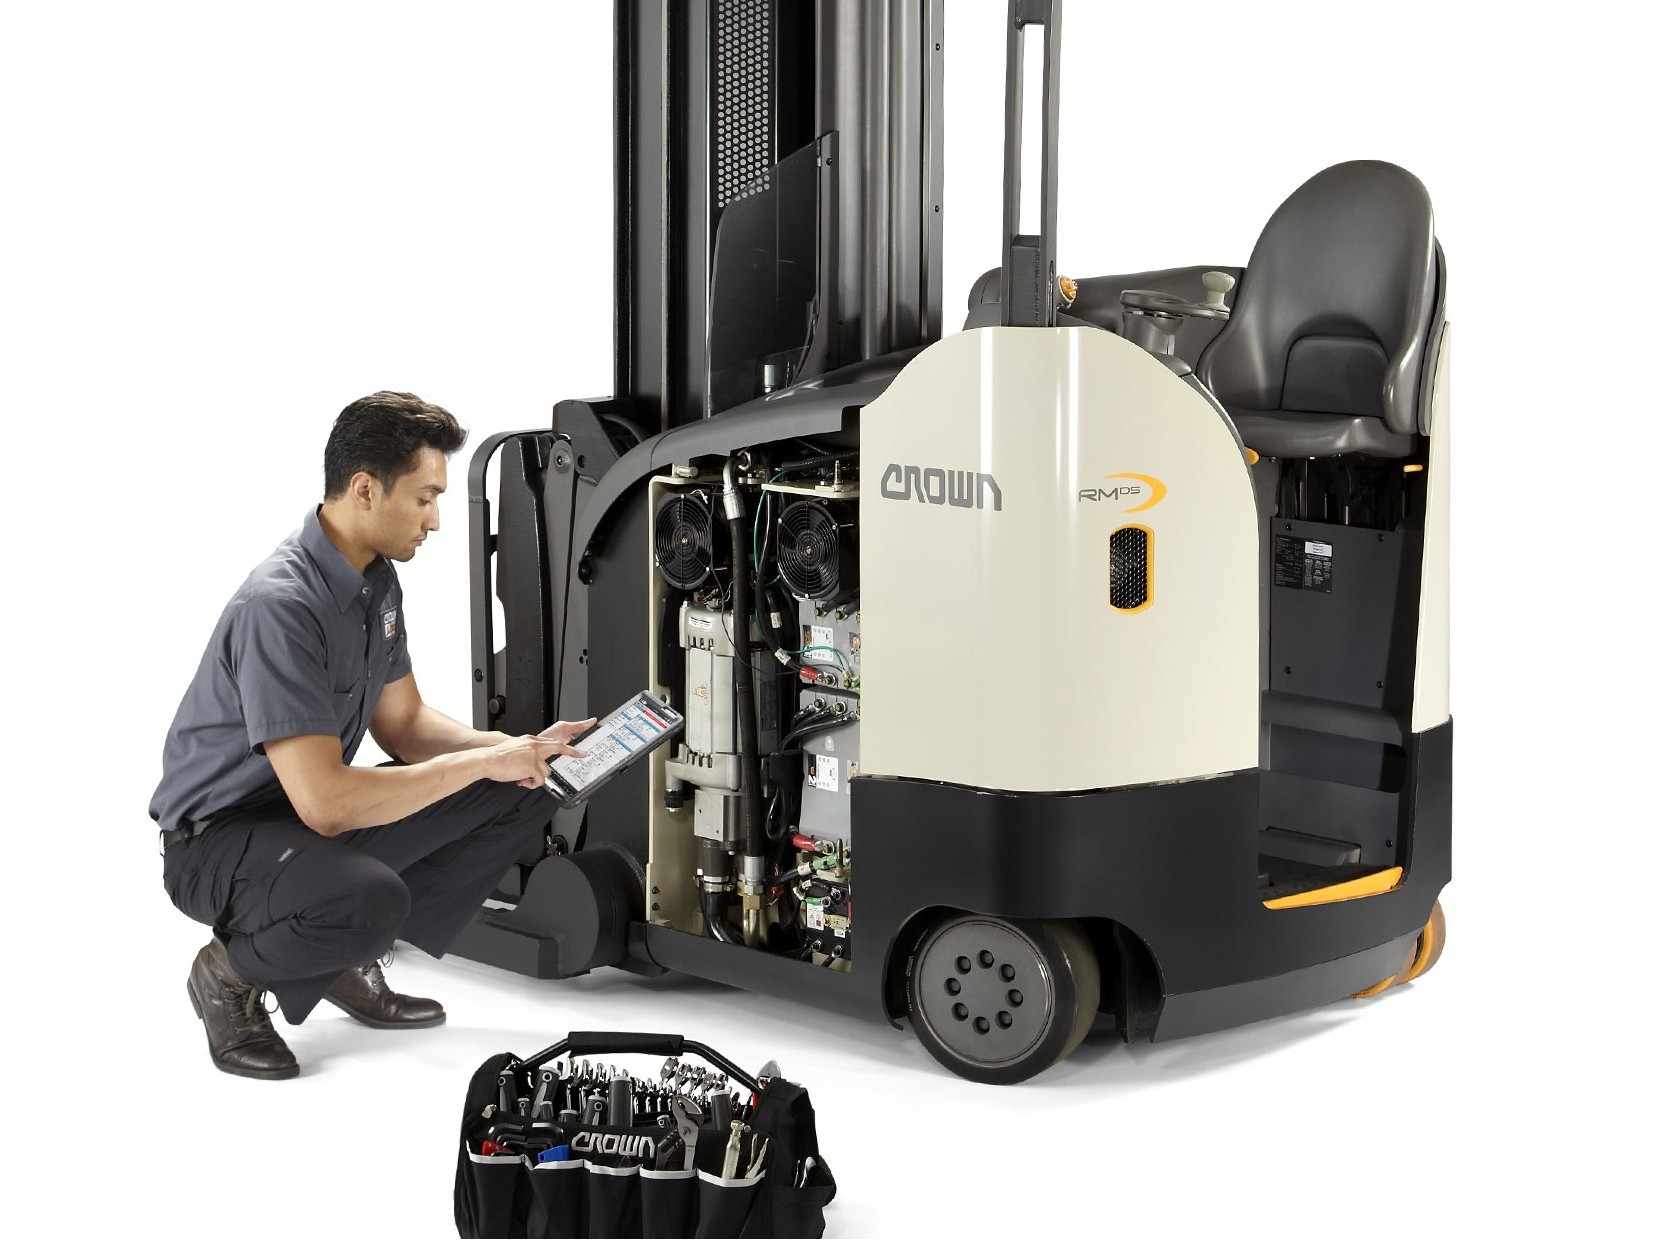 Pre-Owned Lift Truck Inspection